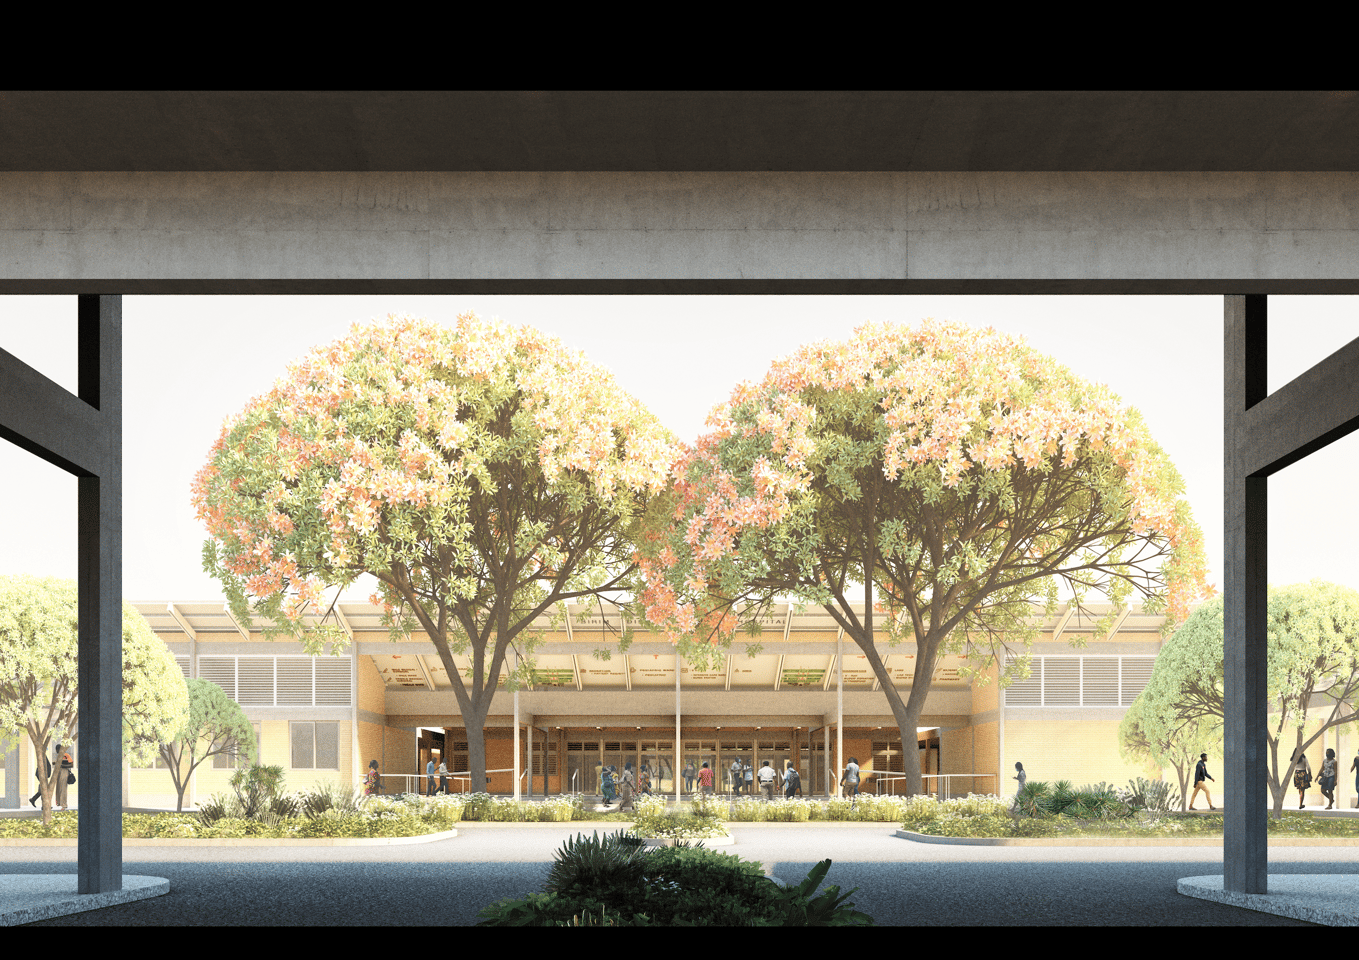 District Hospitals will feature significant landscaping